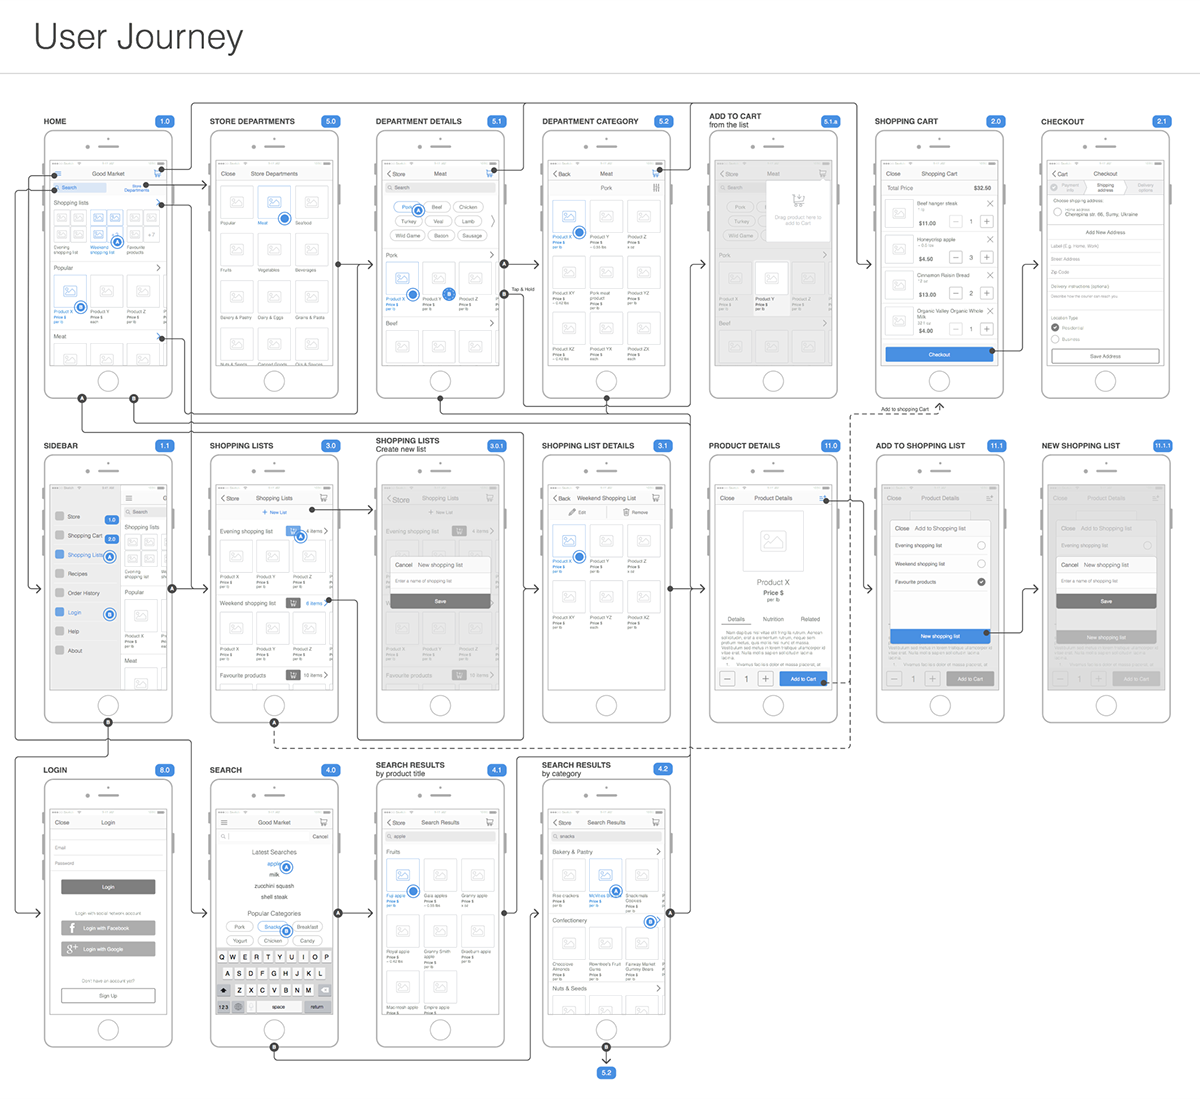 ux wireframes for mobile app of online grocery shopping  u0026 delivery service  made based on ux